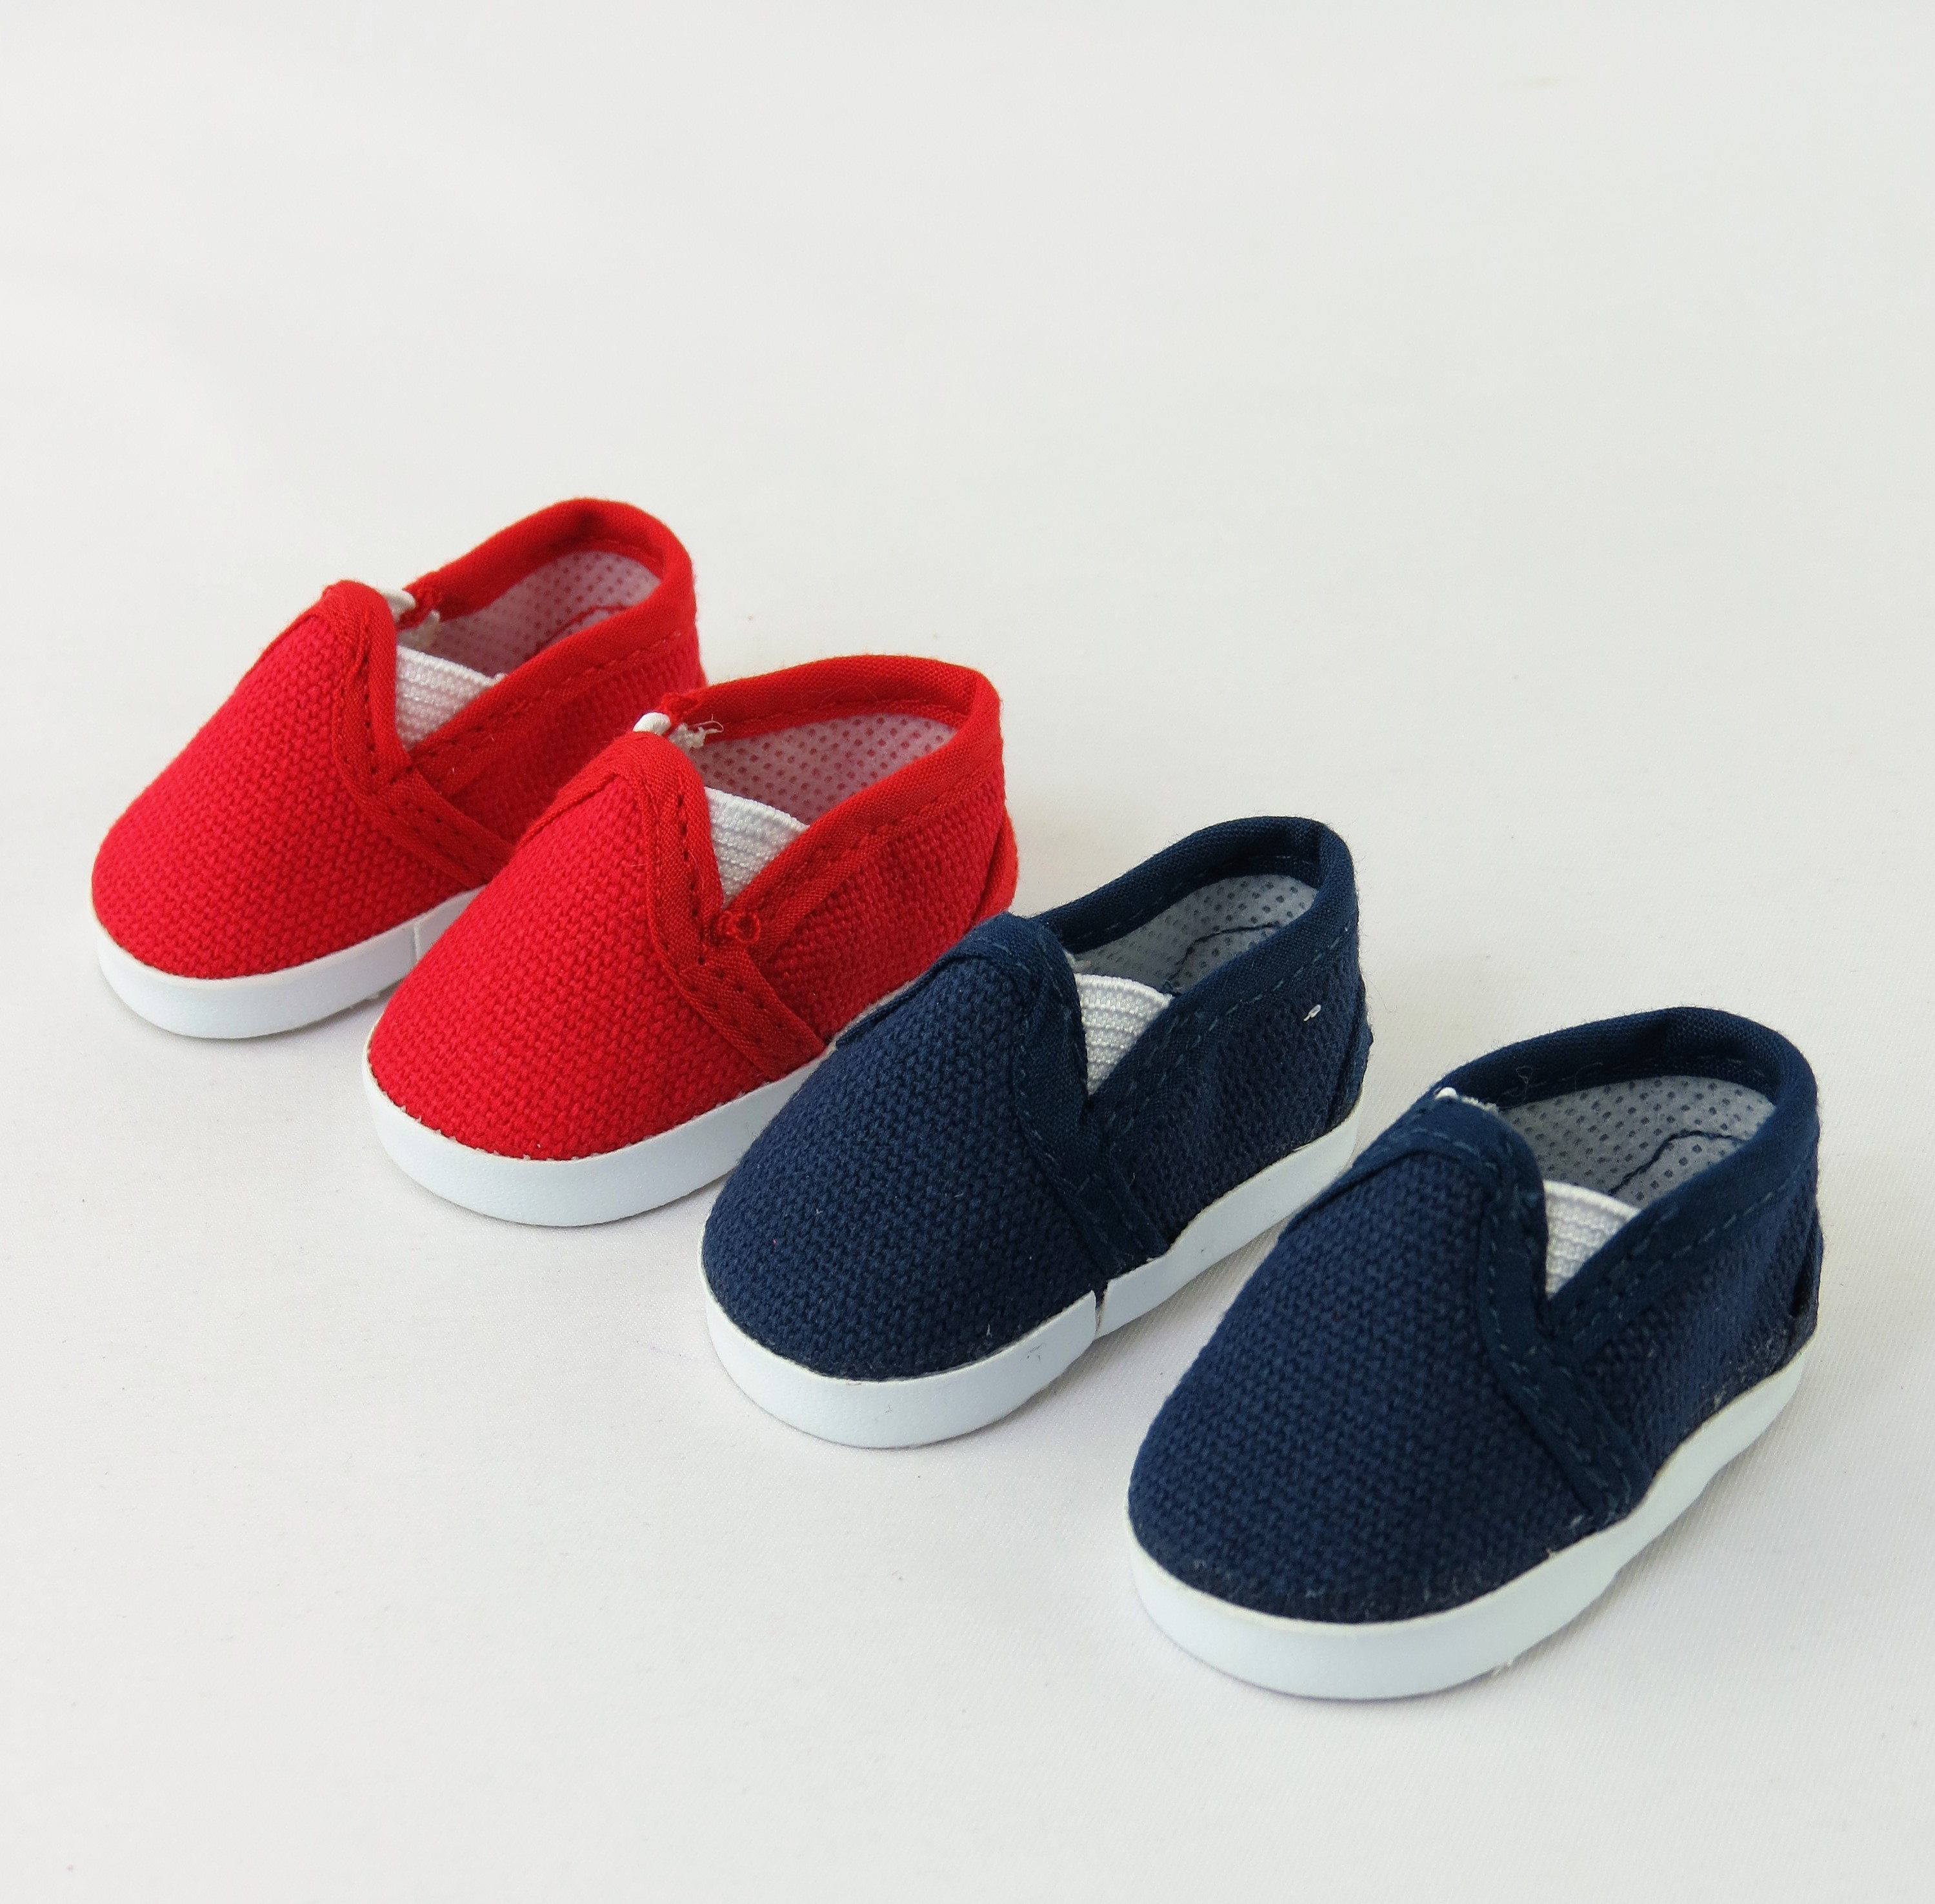 """2 pack of Canvas Slip-On Shoes: Red and Navy 